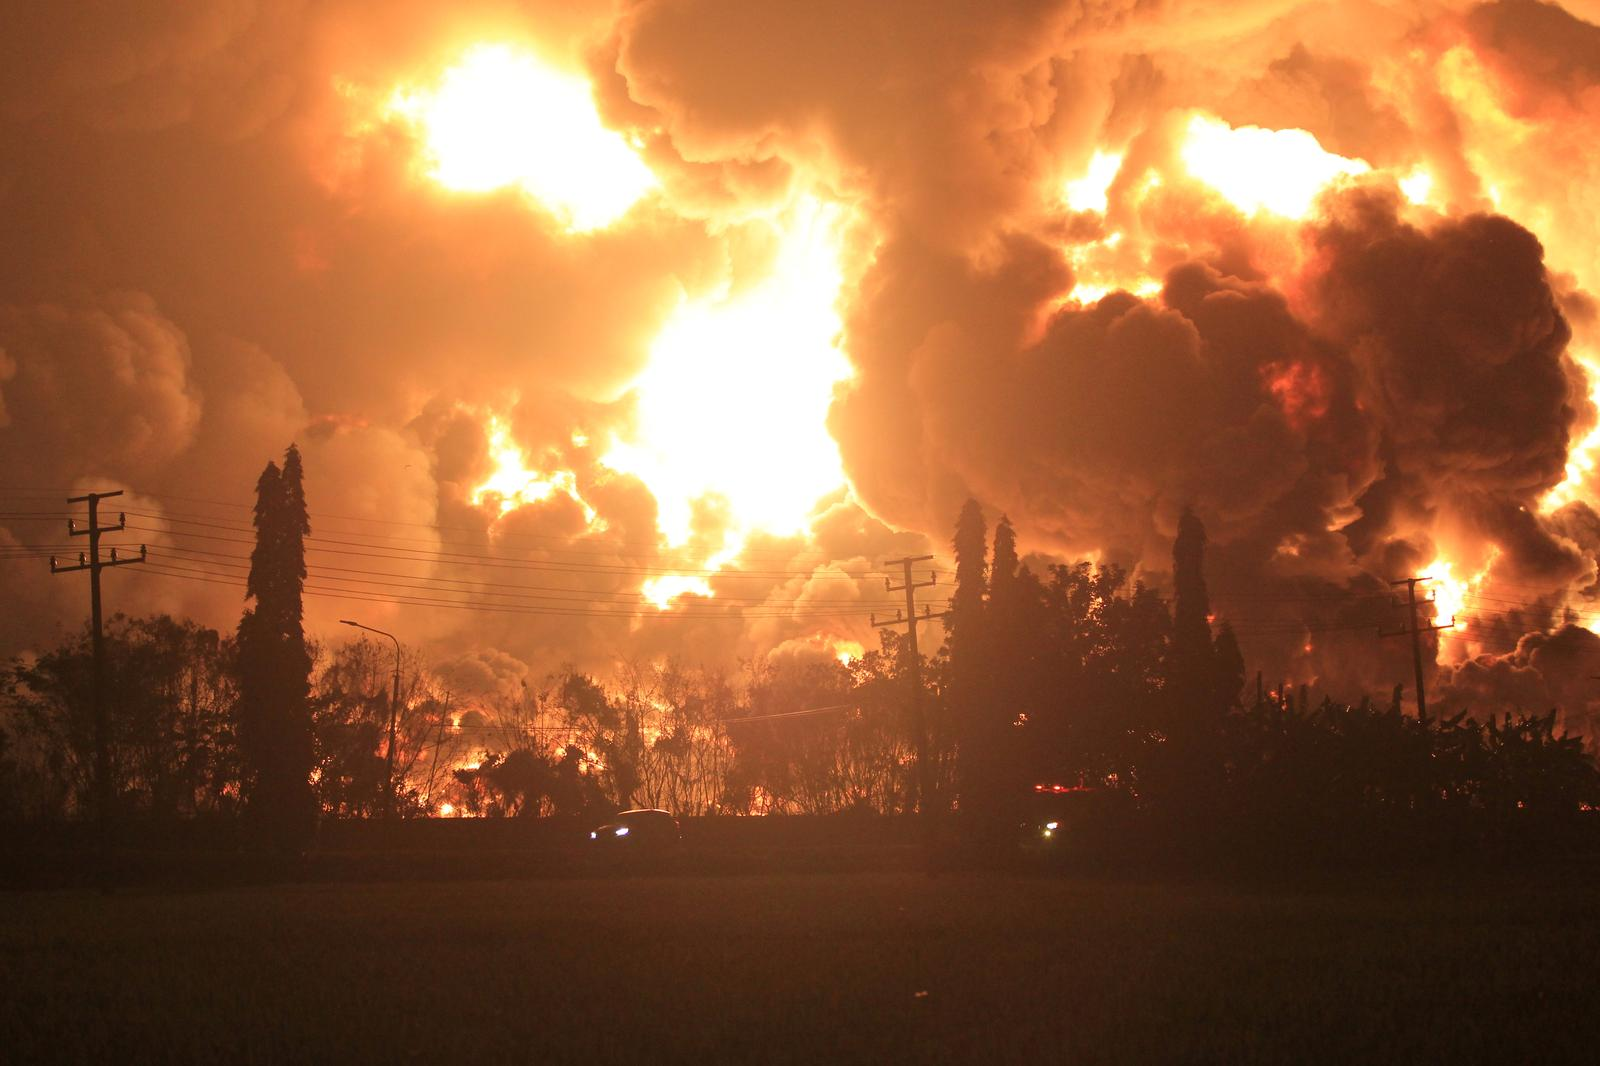 Five injured, hundreds evacuated after massive blaze at Indonesia oil refinery